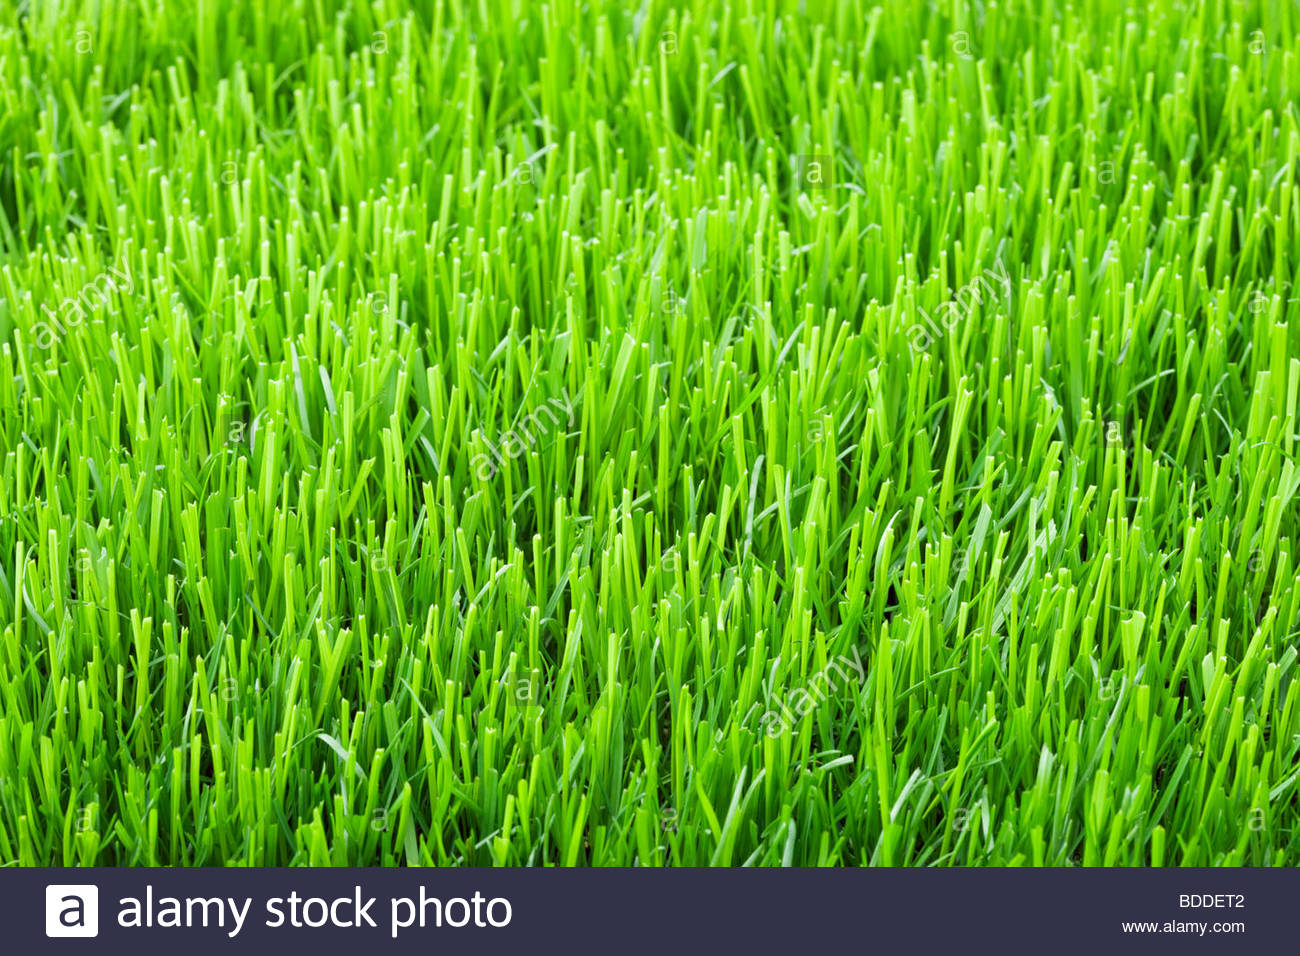 Lawn grass Stock Photo